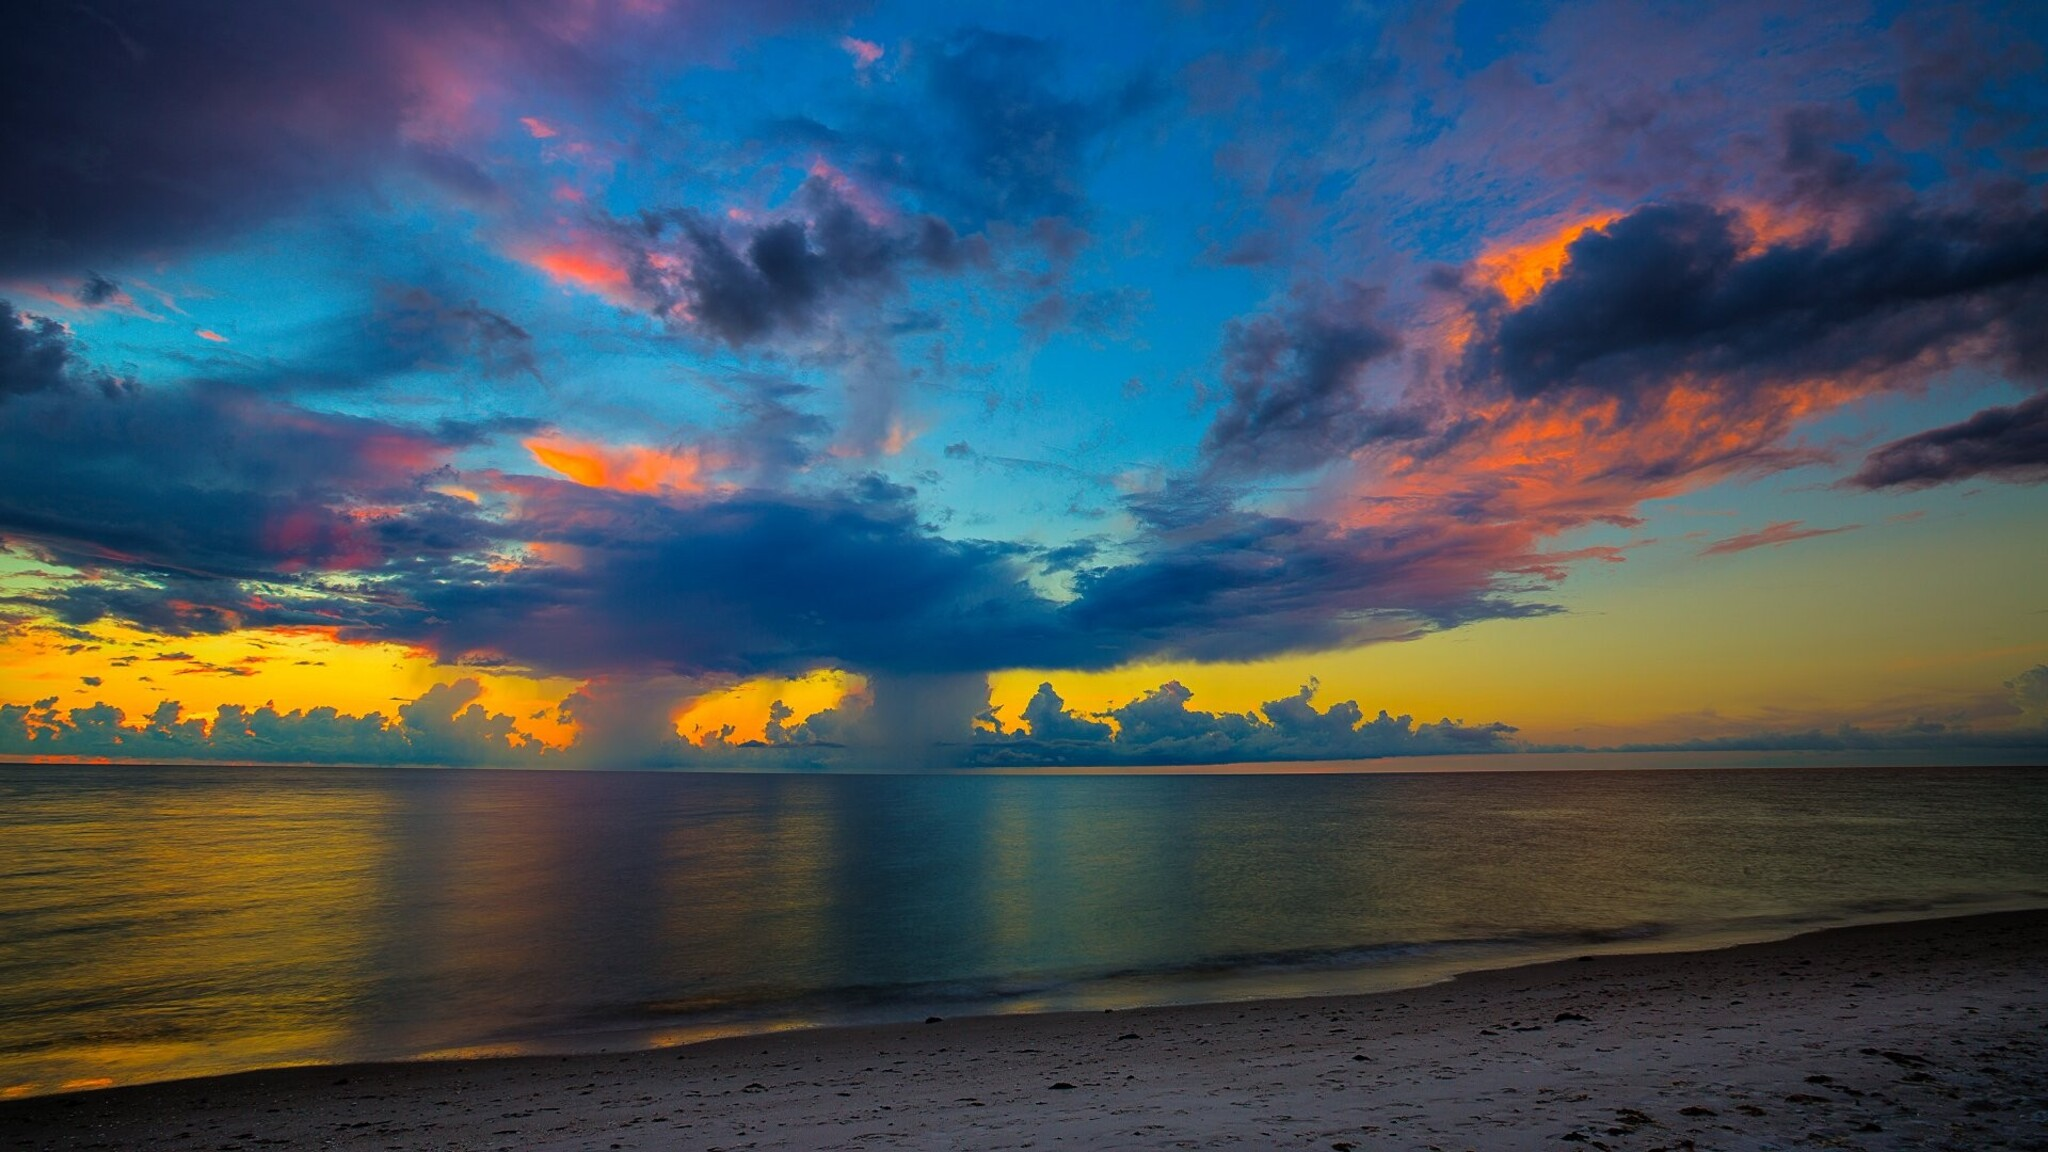 Sunset Backgrounds Pictures: 2048x1152 Florida Beach Sunset 2048x1152 Resolution HD 4k